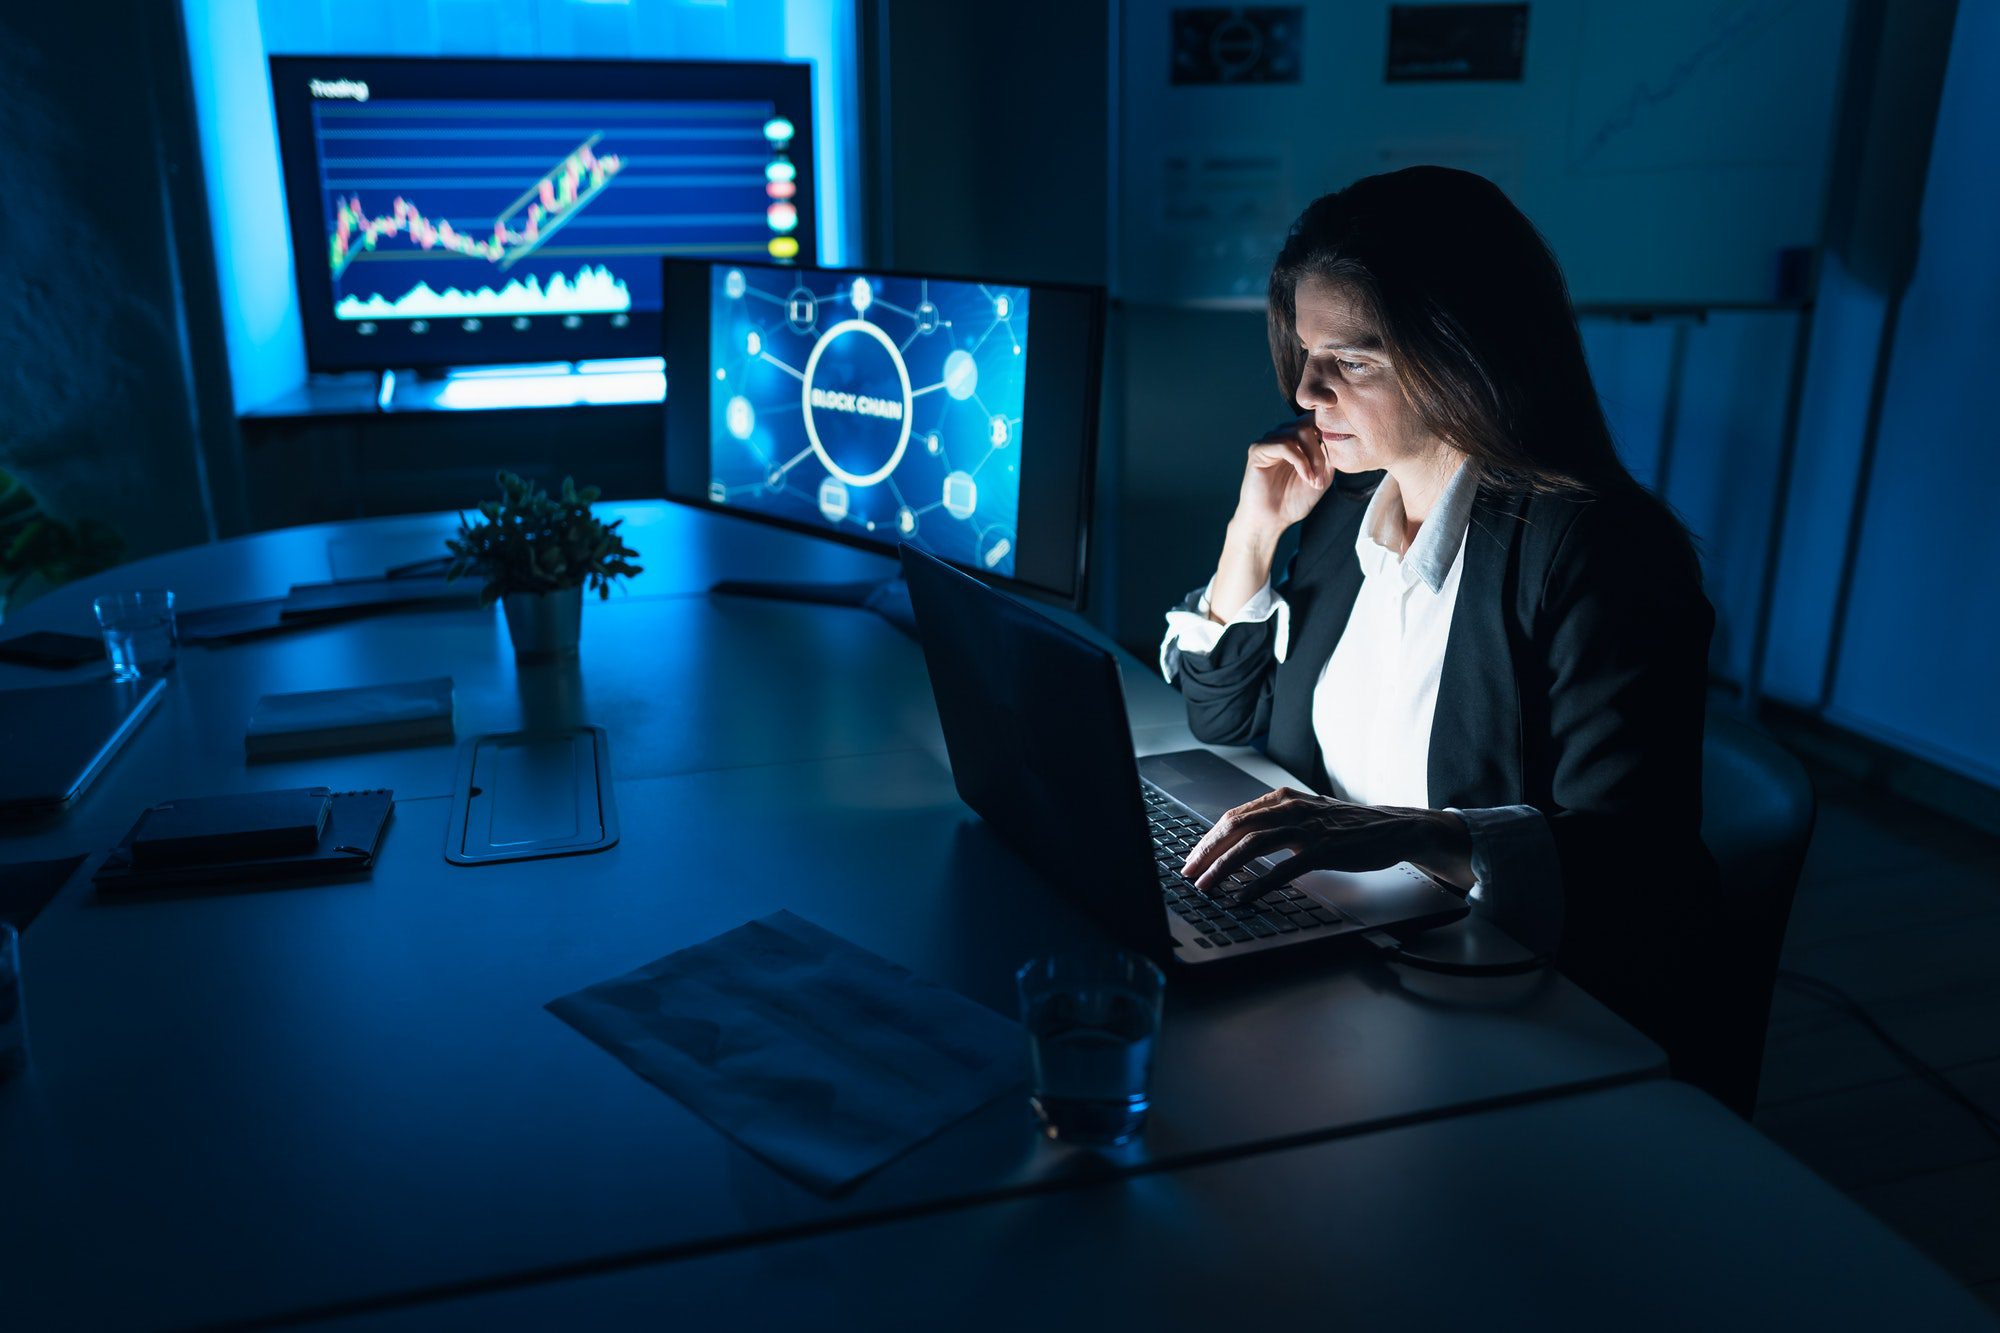 Business stock trader woman working on crypto currency markets with blockchain technology